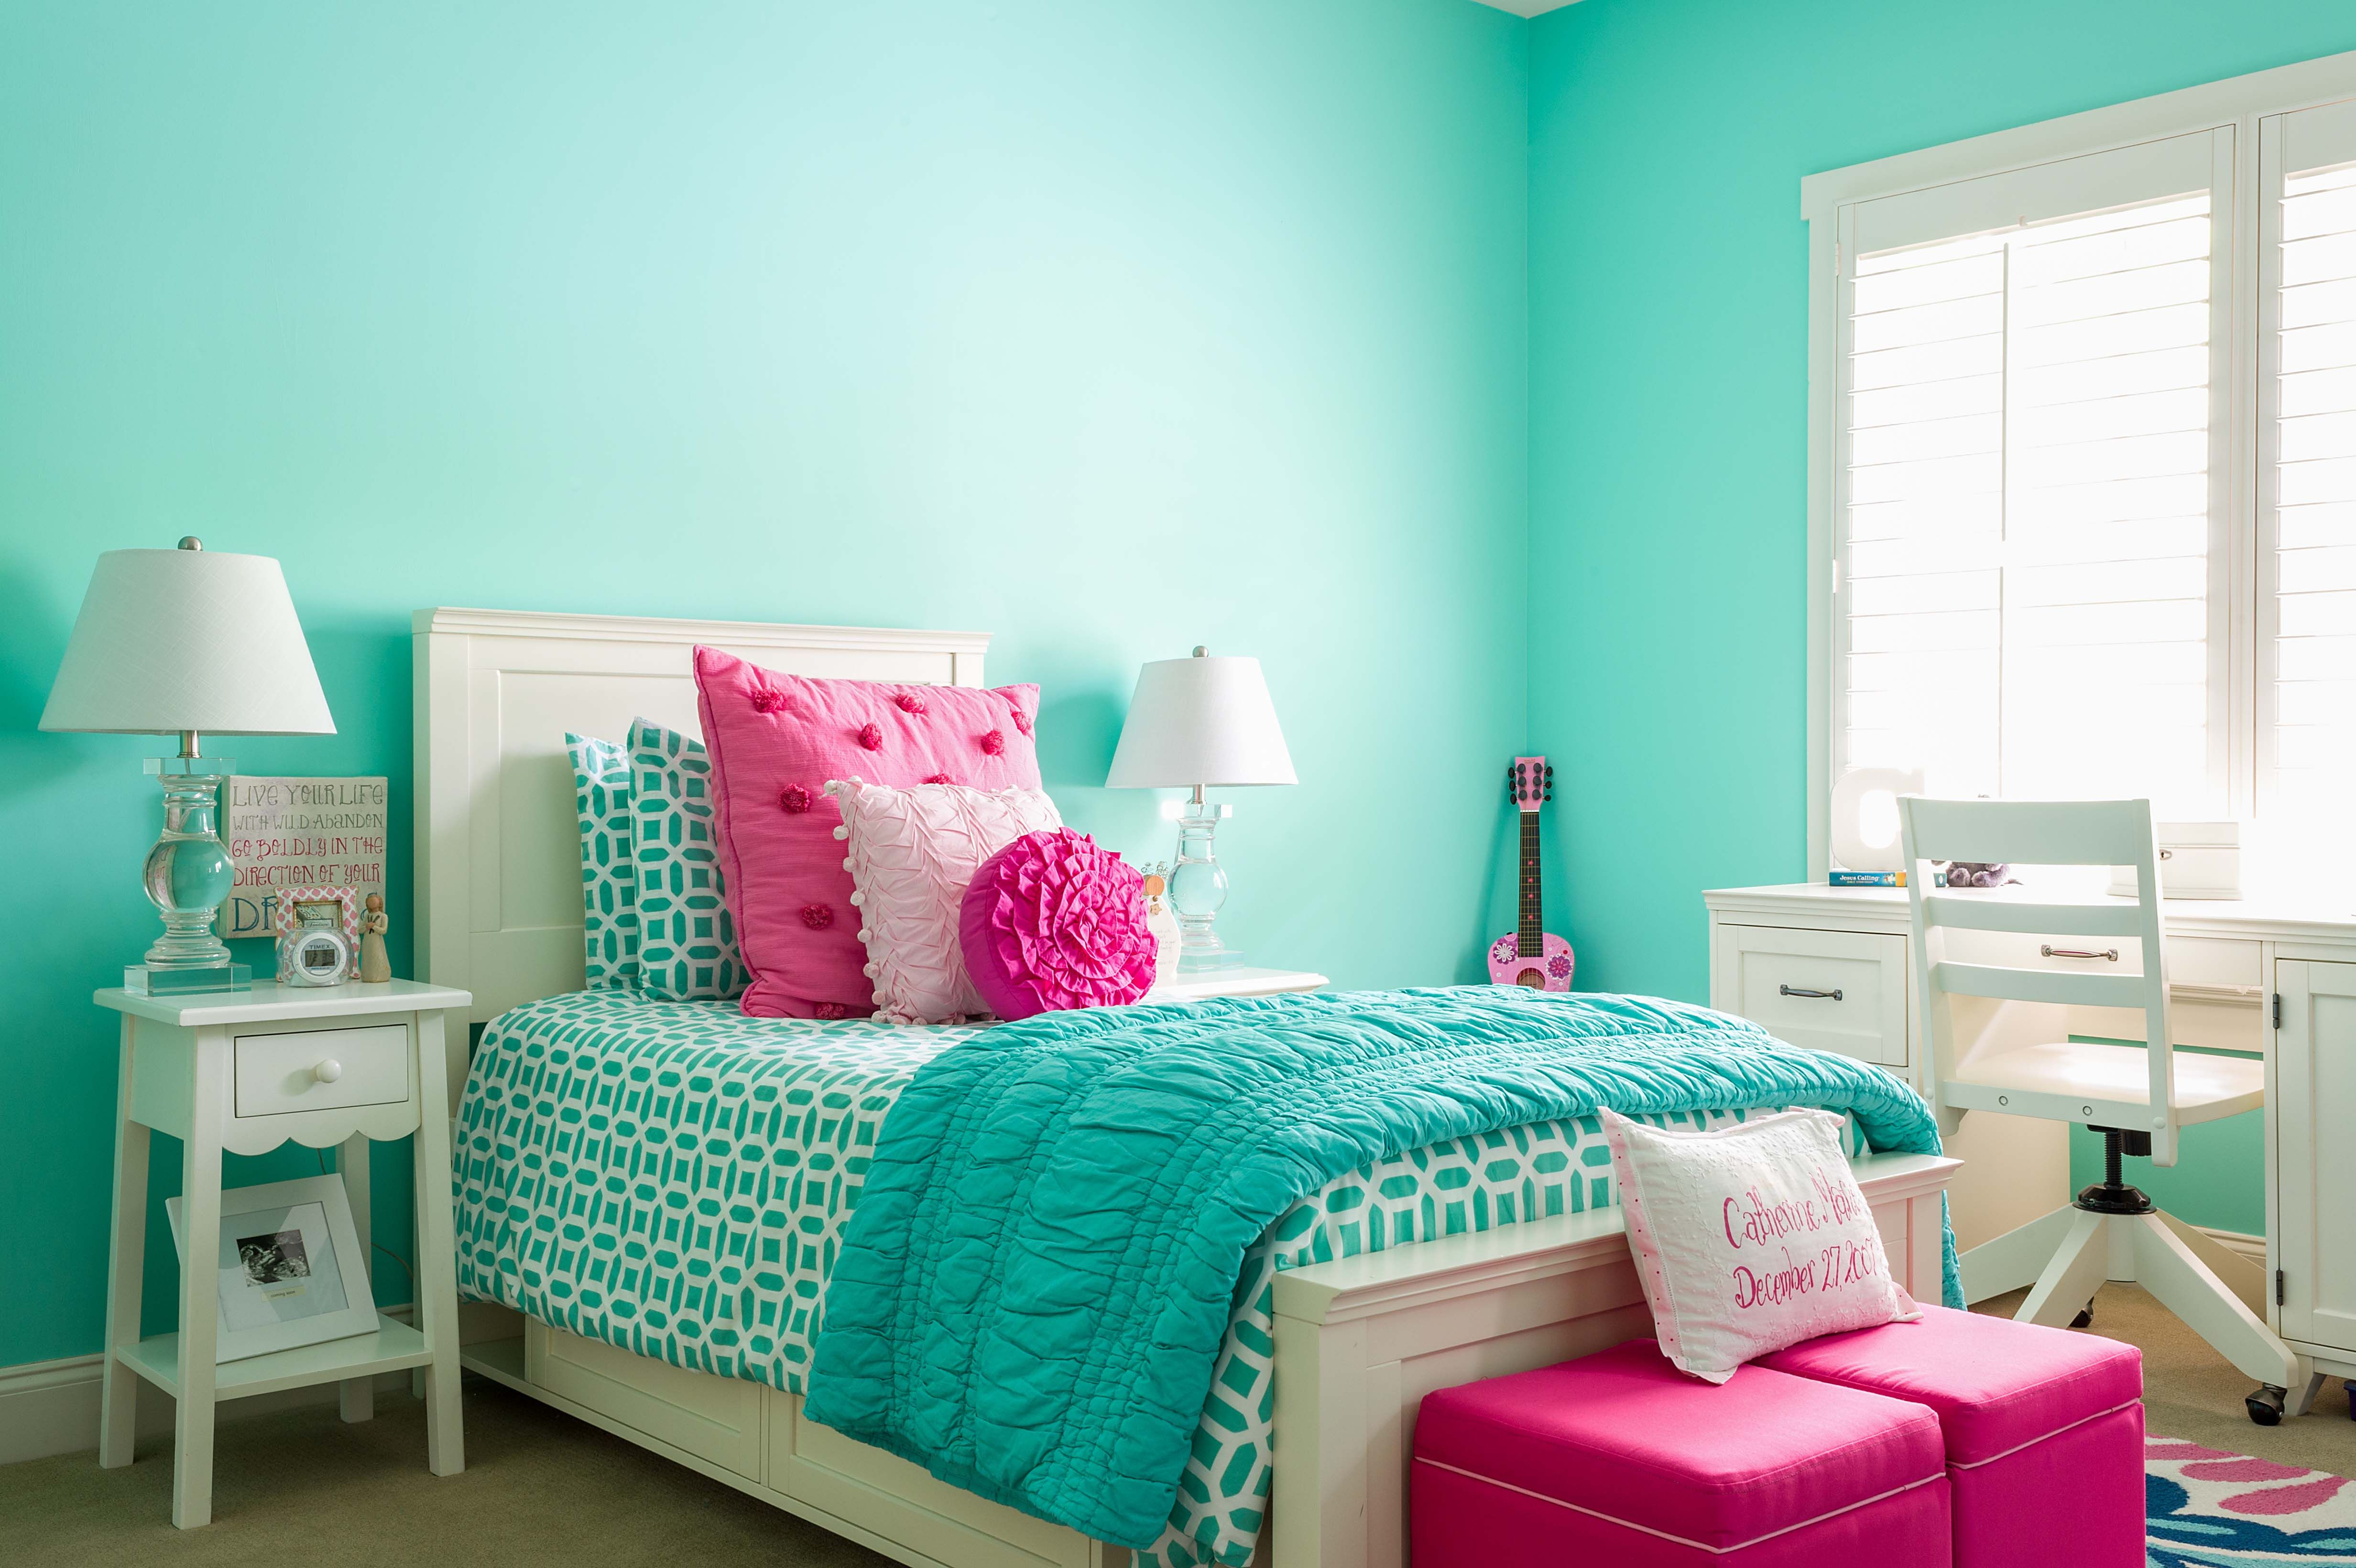 Girl S Bedroom Aqua And Pink Teal And Pink Kids Interior Room Kids Room Interior Design Turquoise Room